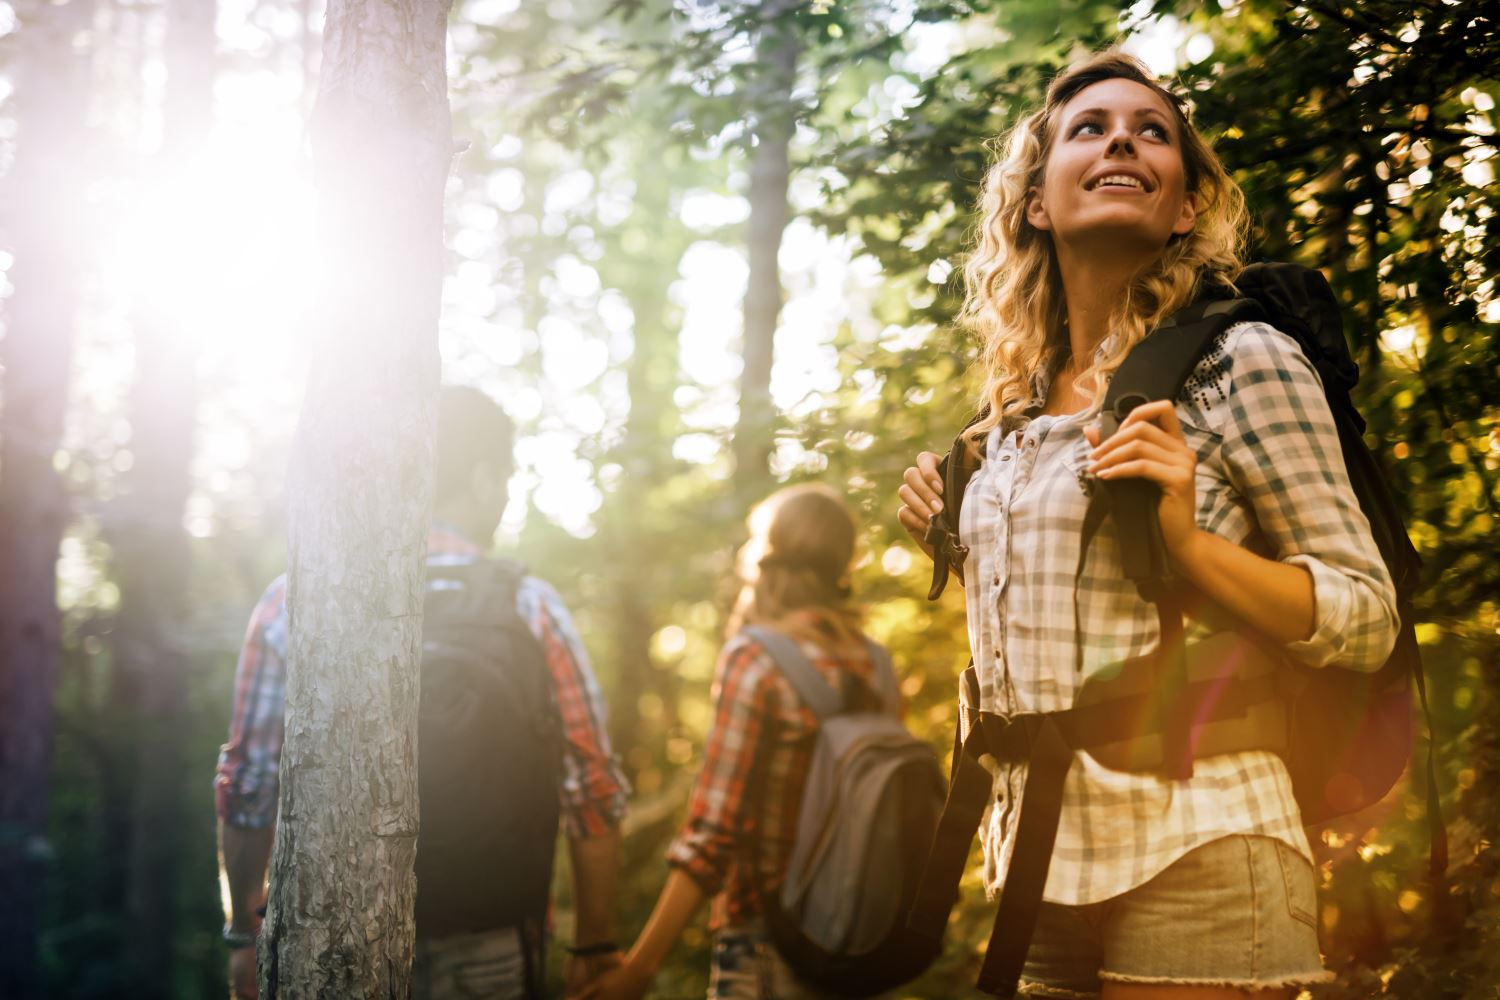 5 amazing health benefits of hiking